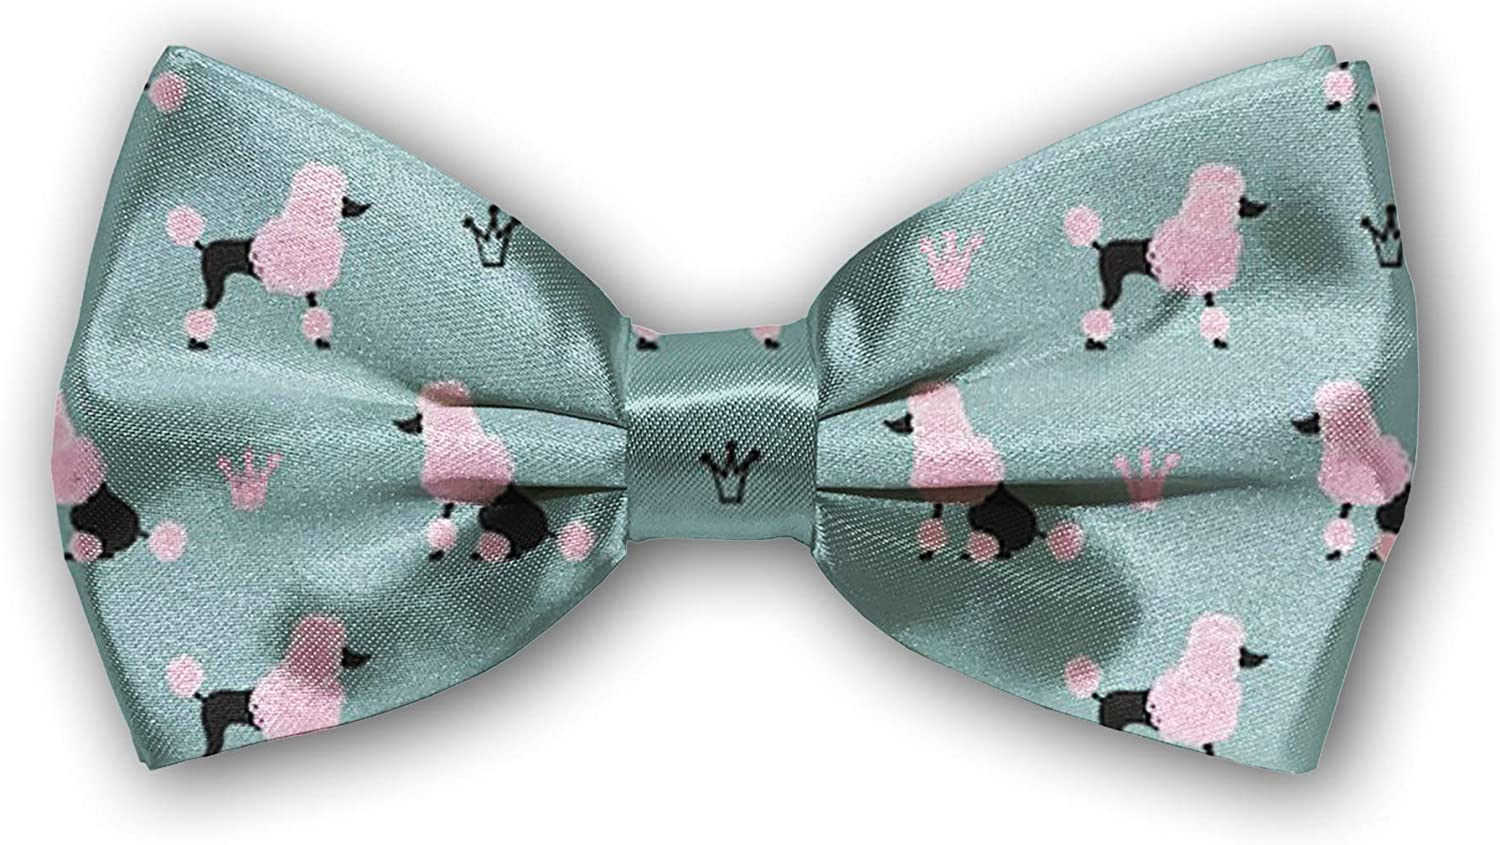 Bow Tie Tuxedo Butterfly Ranking TOP6 Cotton Mens Boys New life Adjustable for Bowtie